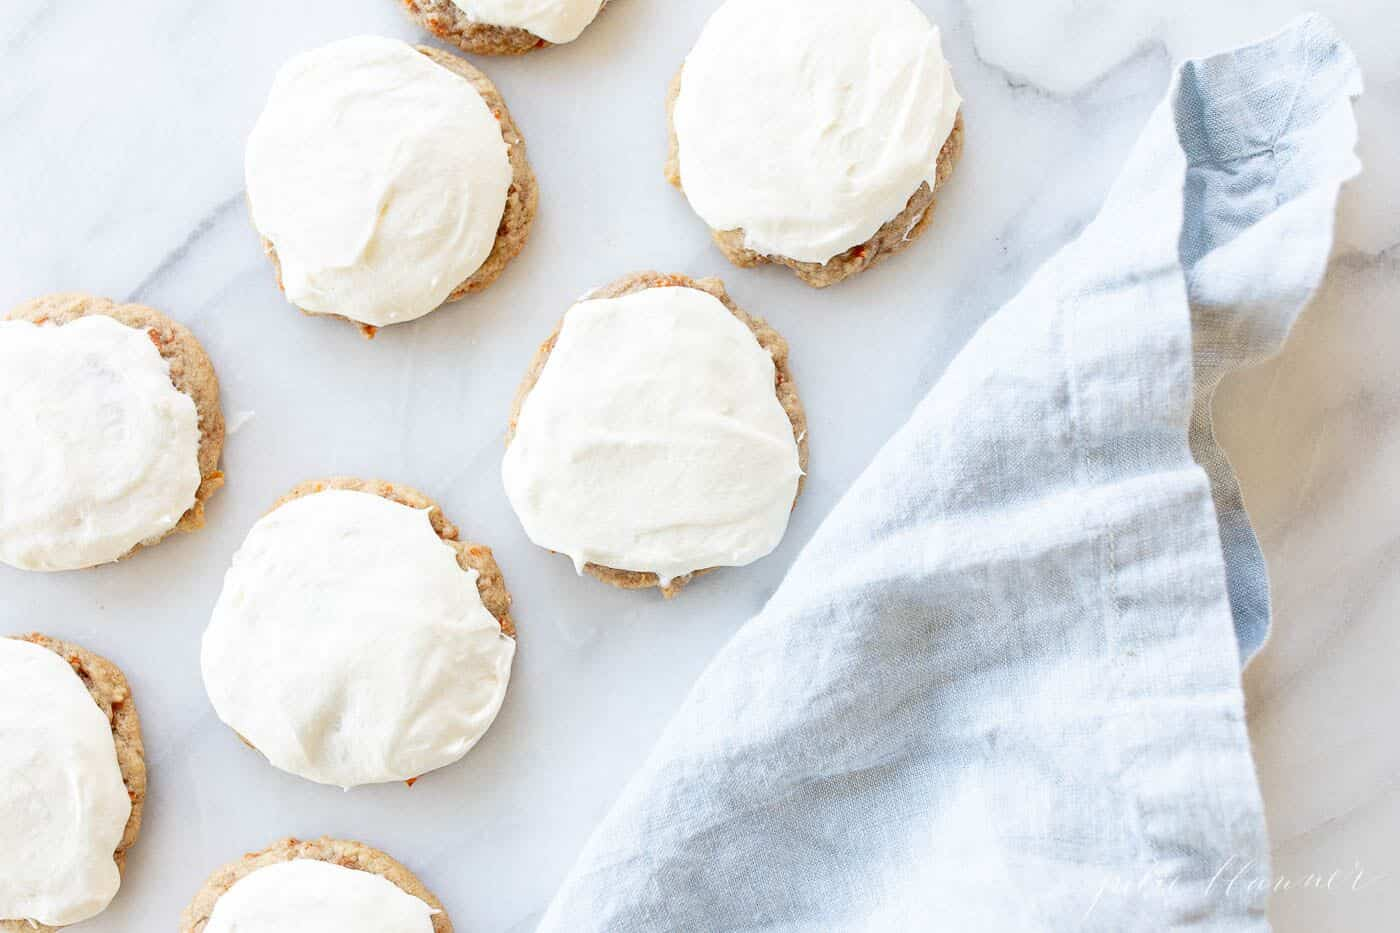 Frosted carrot cake cookies on a marble surface, blue linen towel to the side.